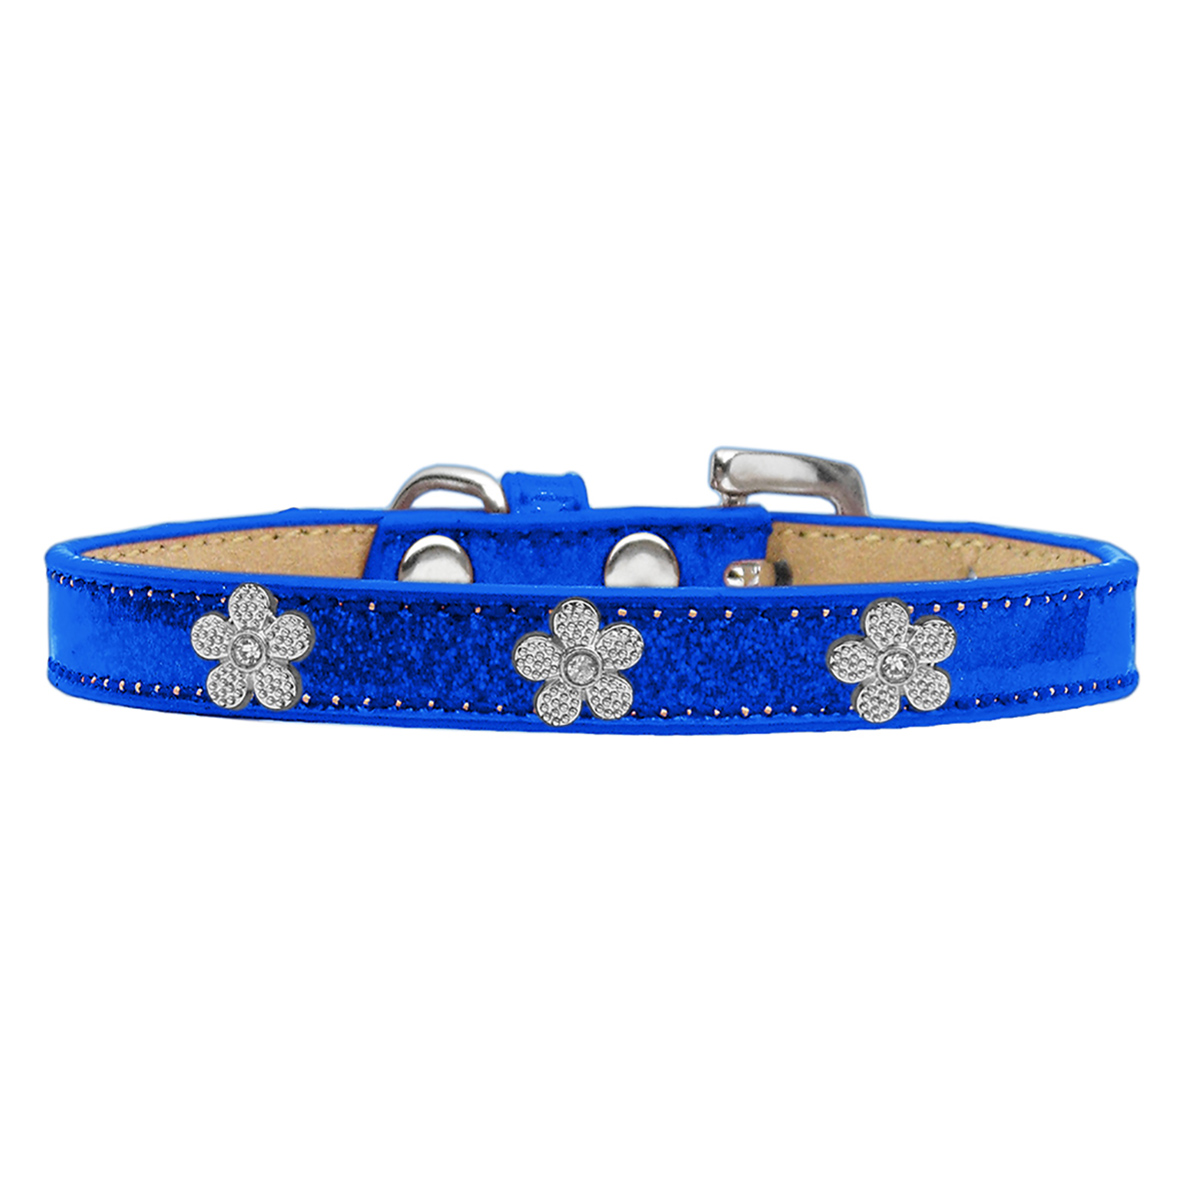 Silver Flower Widget Dog Collar - Blue Ice Cream